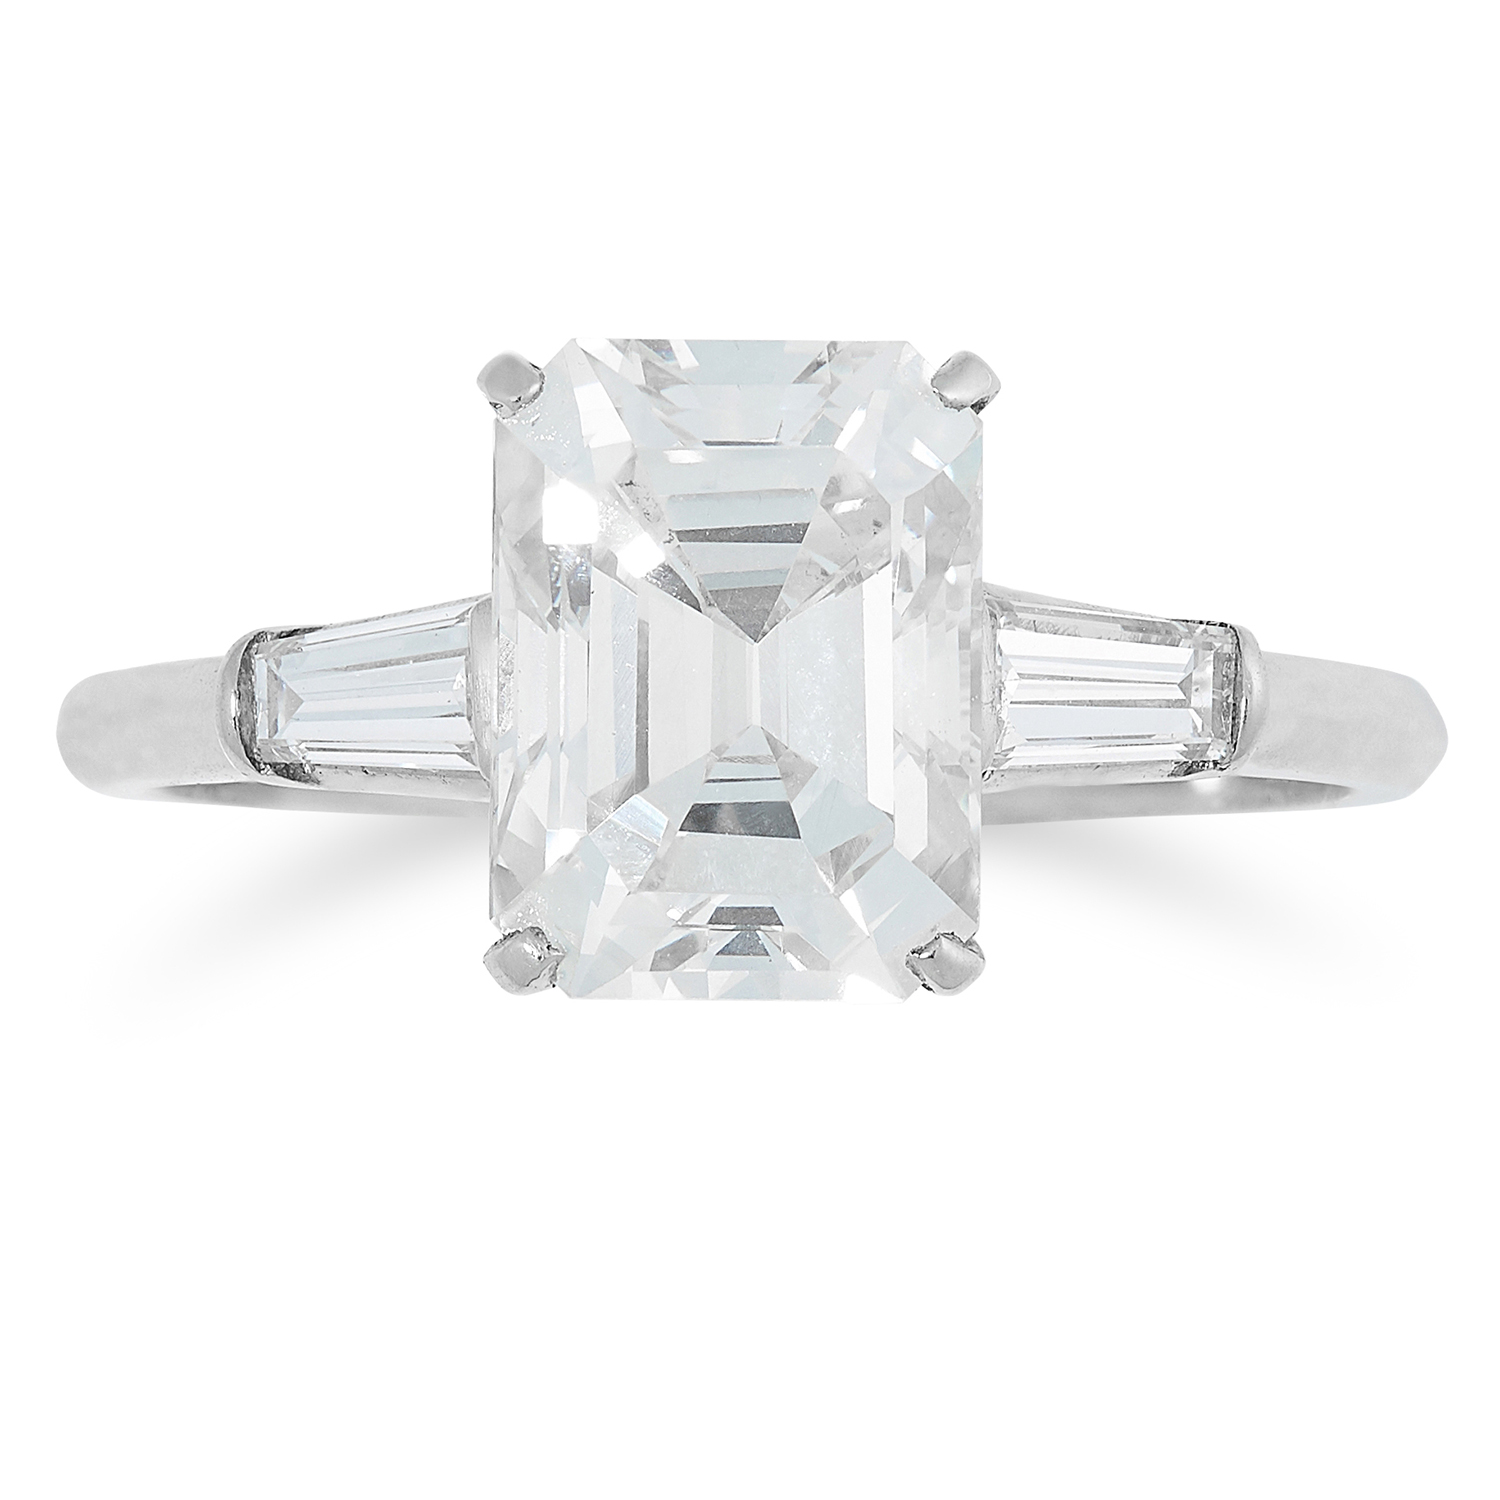 2.48 CARAT DIAMOND RING set with an emerald cut diamond of 2.48 carats between two tapered baguette